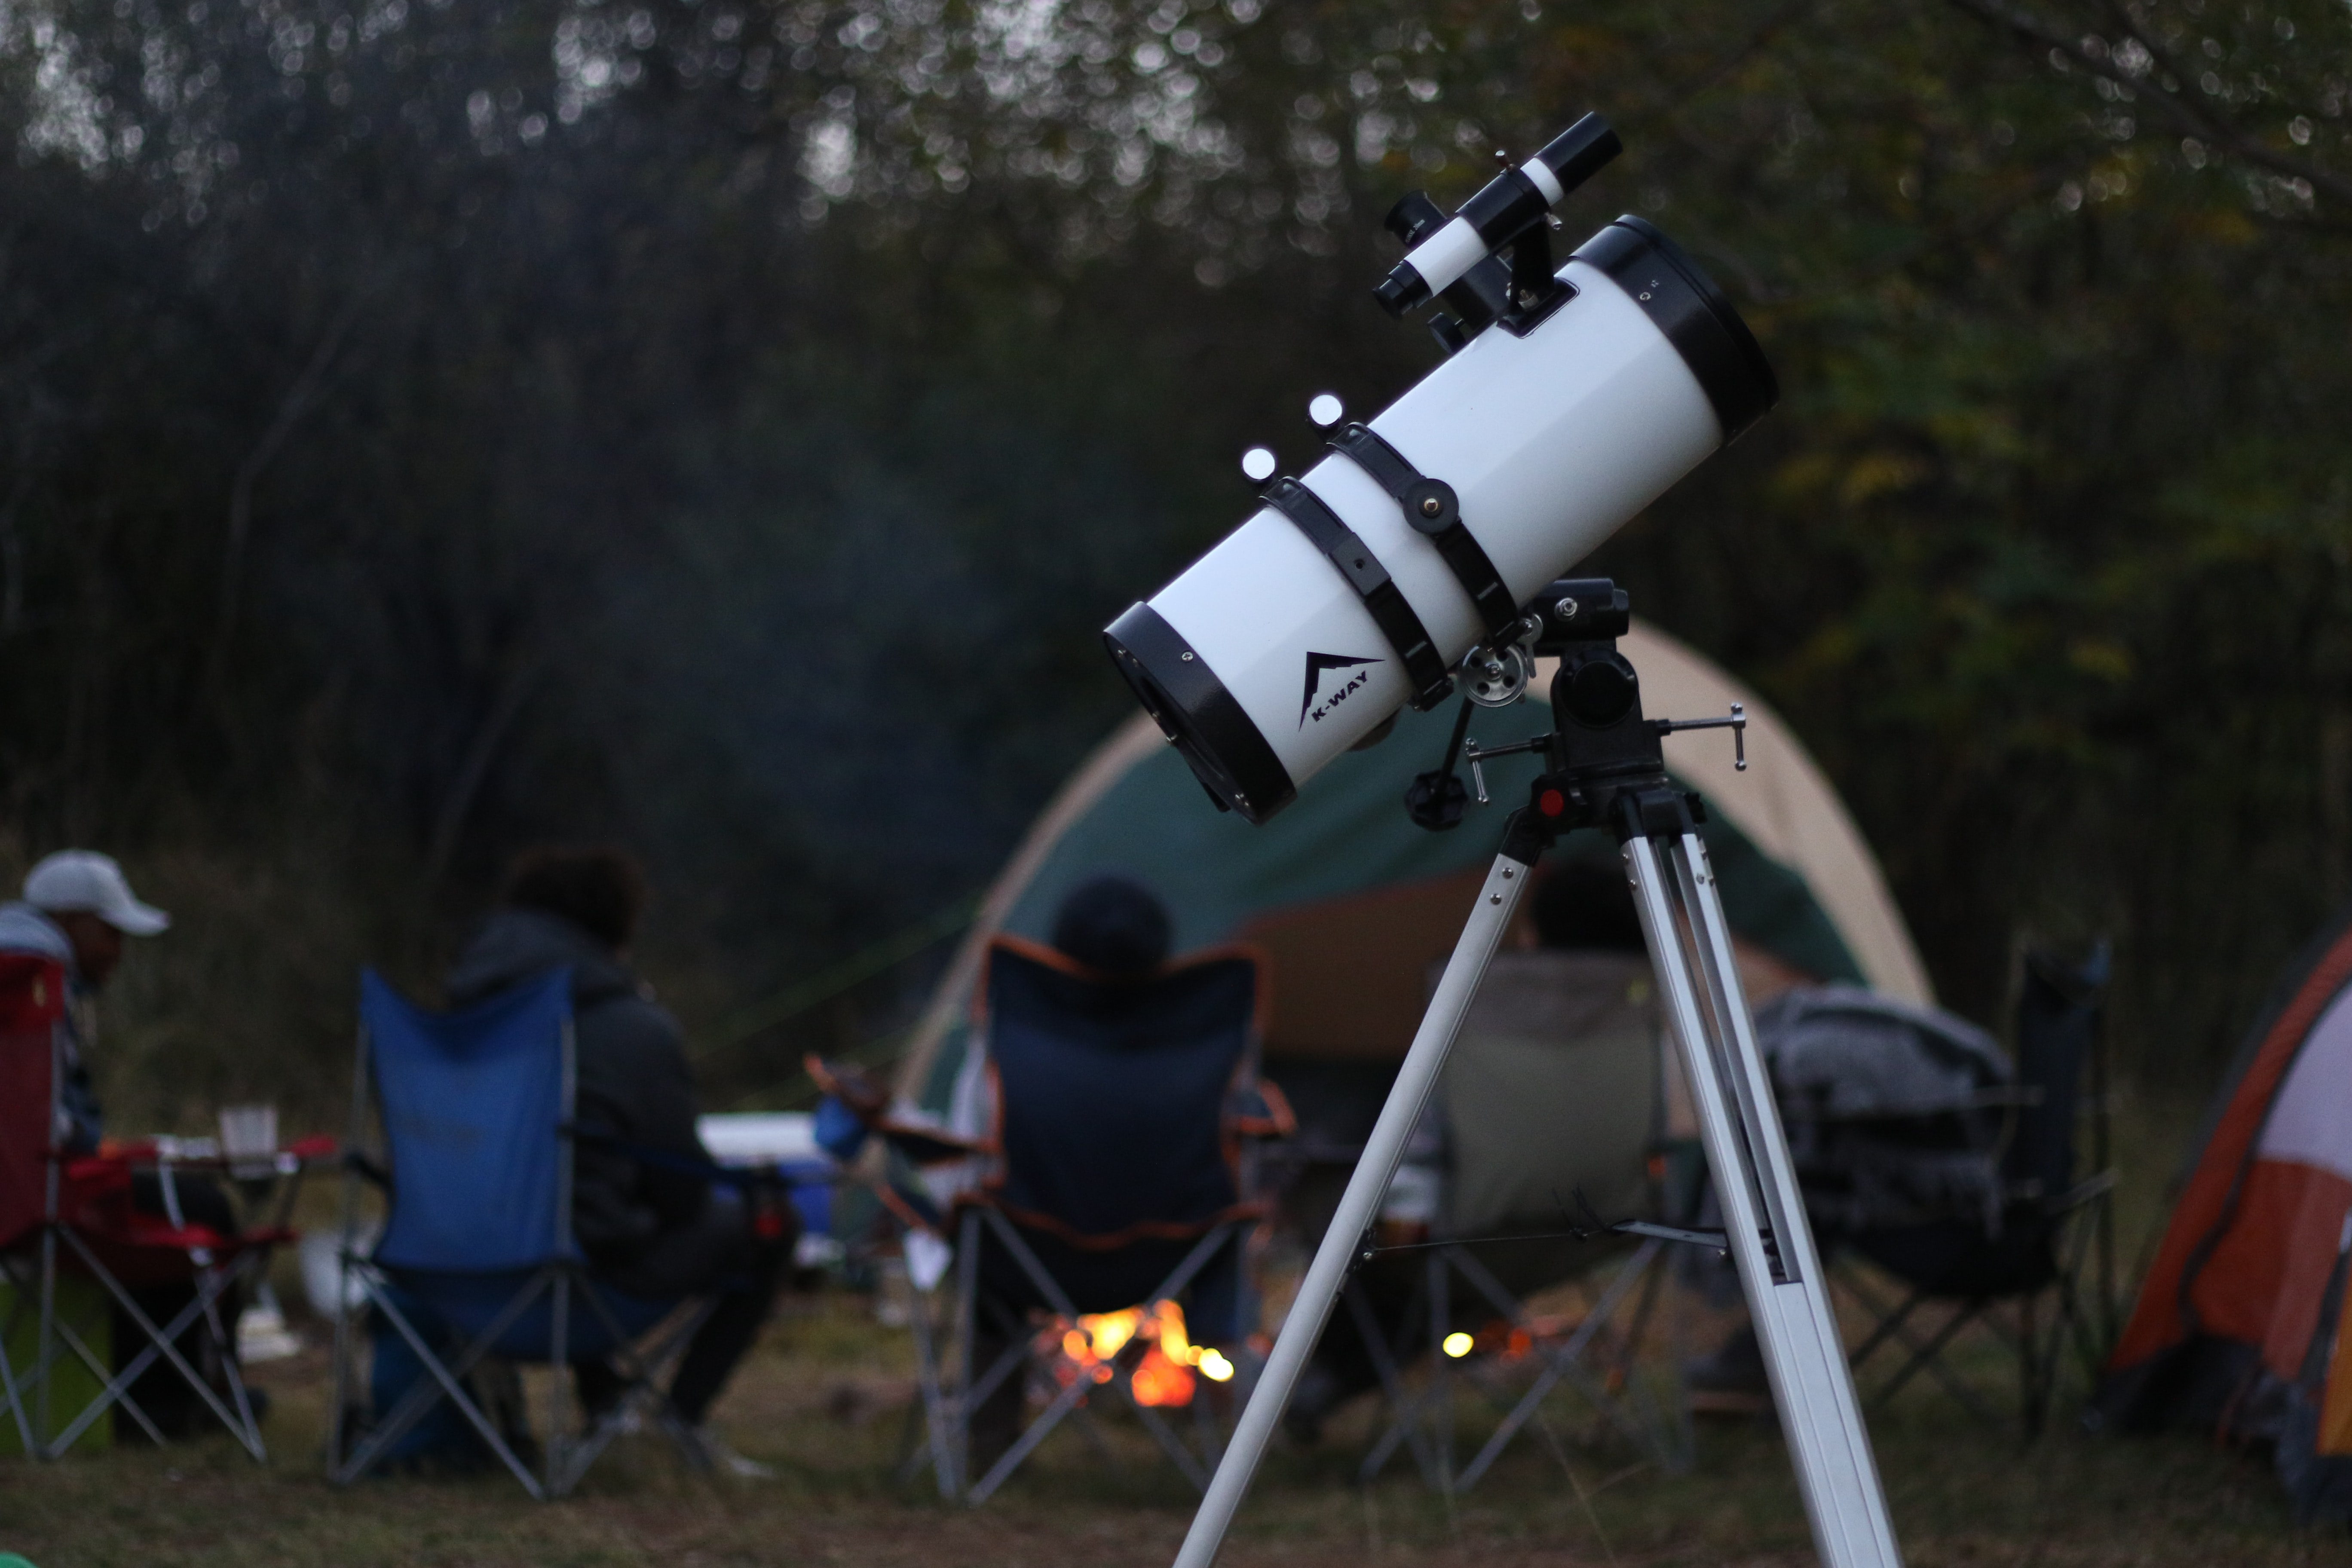 Campers sitting around a campfire with their stargazing telescope set up behind them